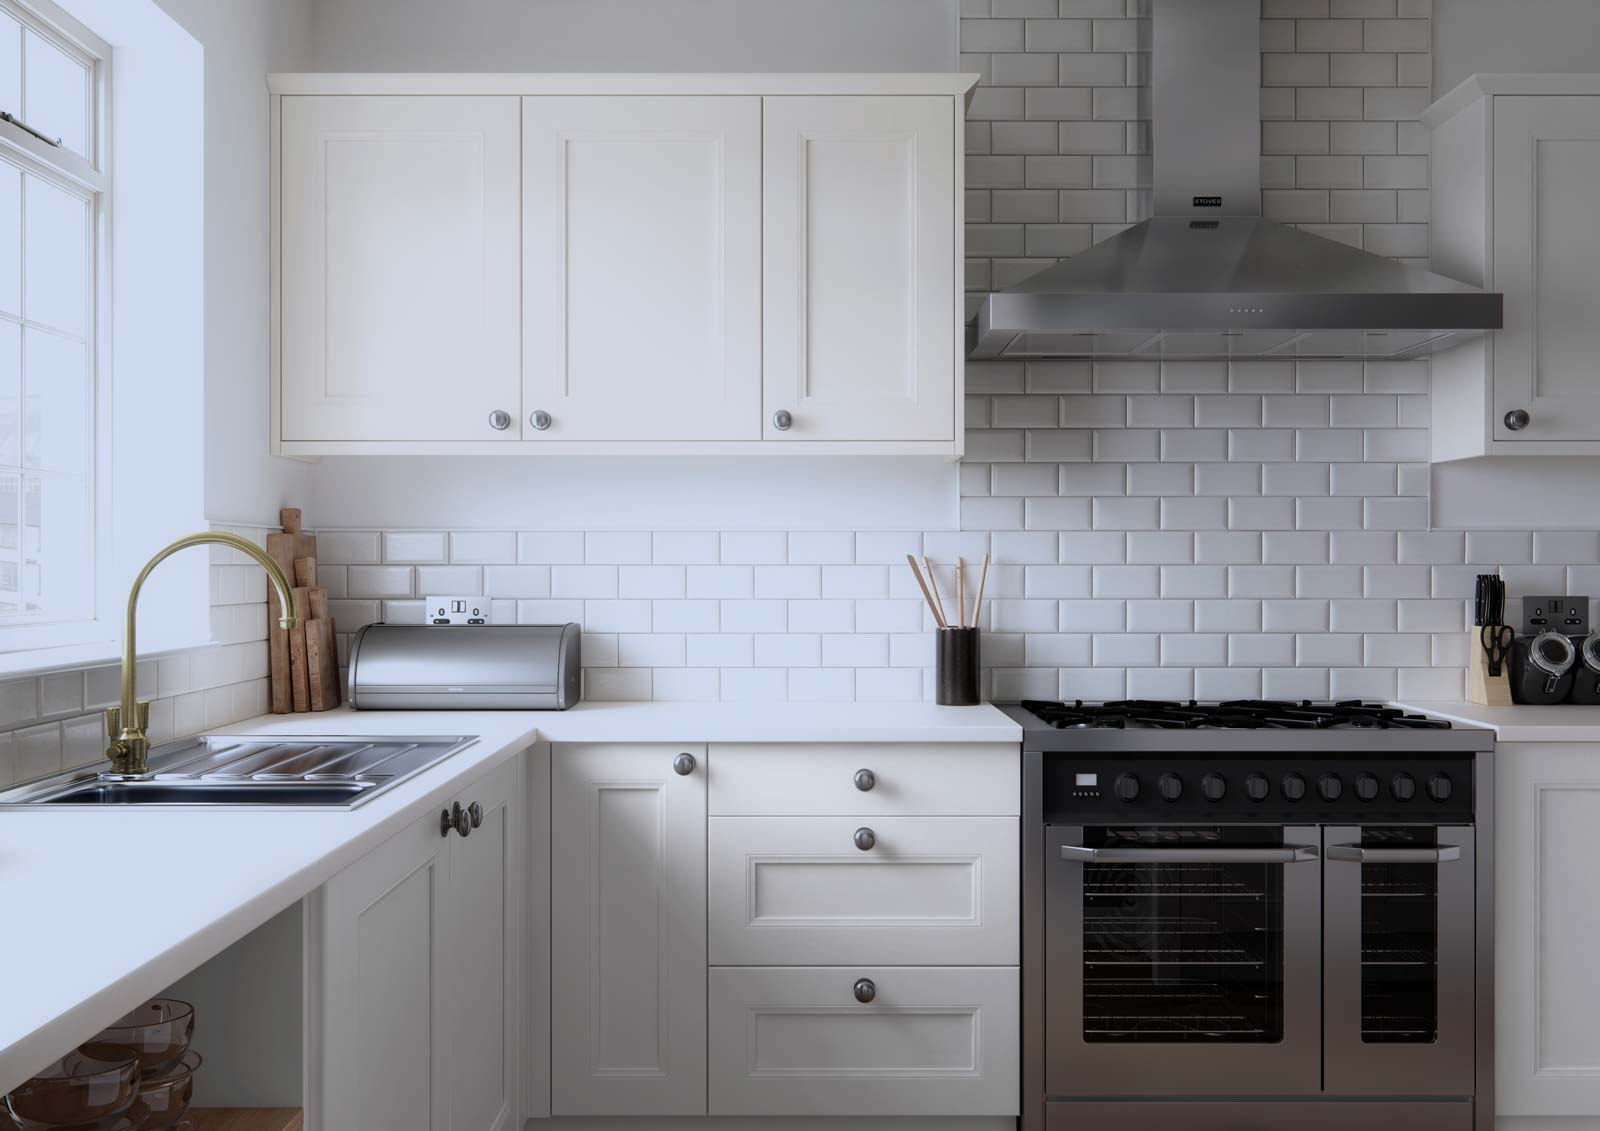 Classic Collection - Snellings Kitchens: Bespoke Kitchens